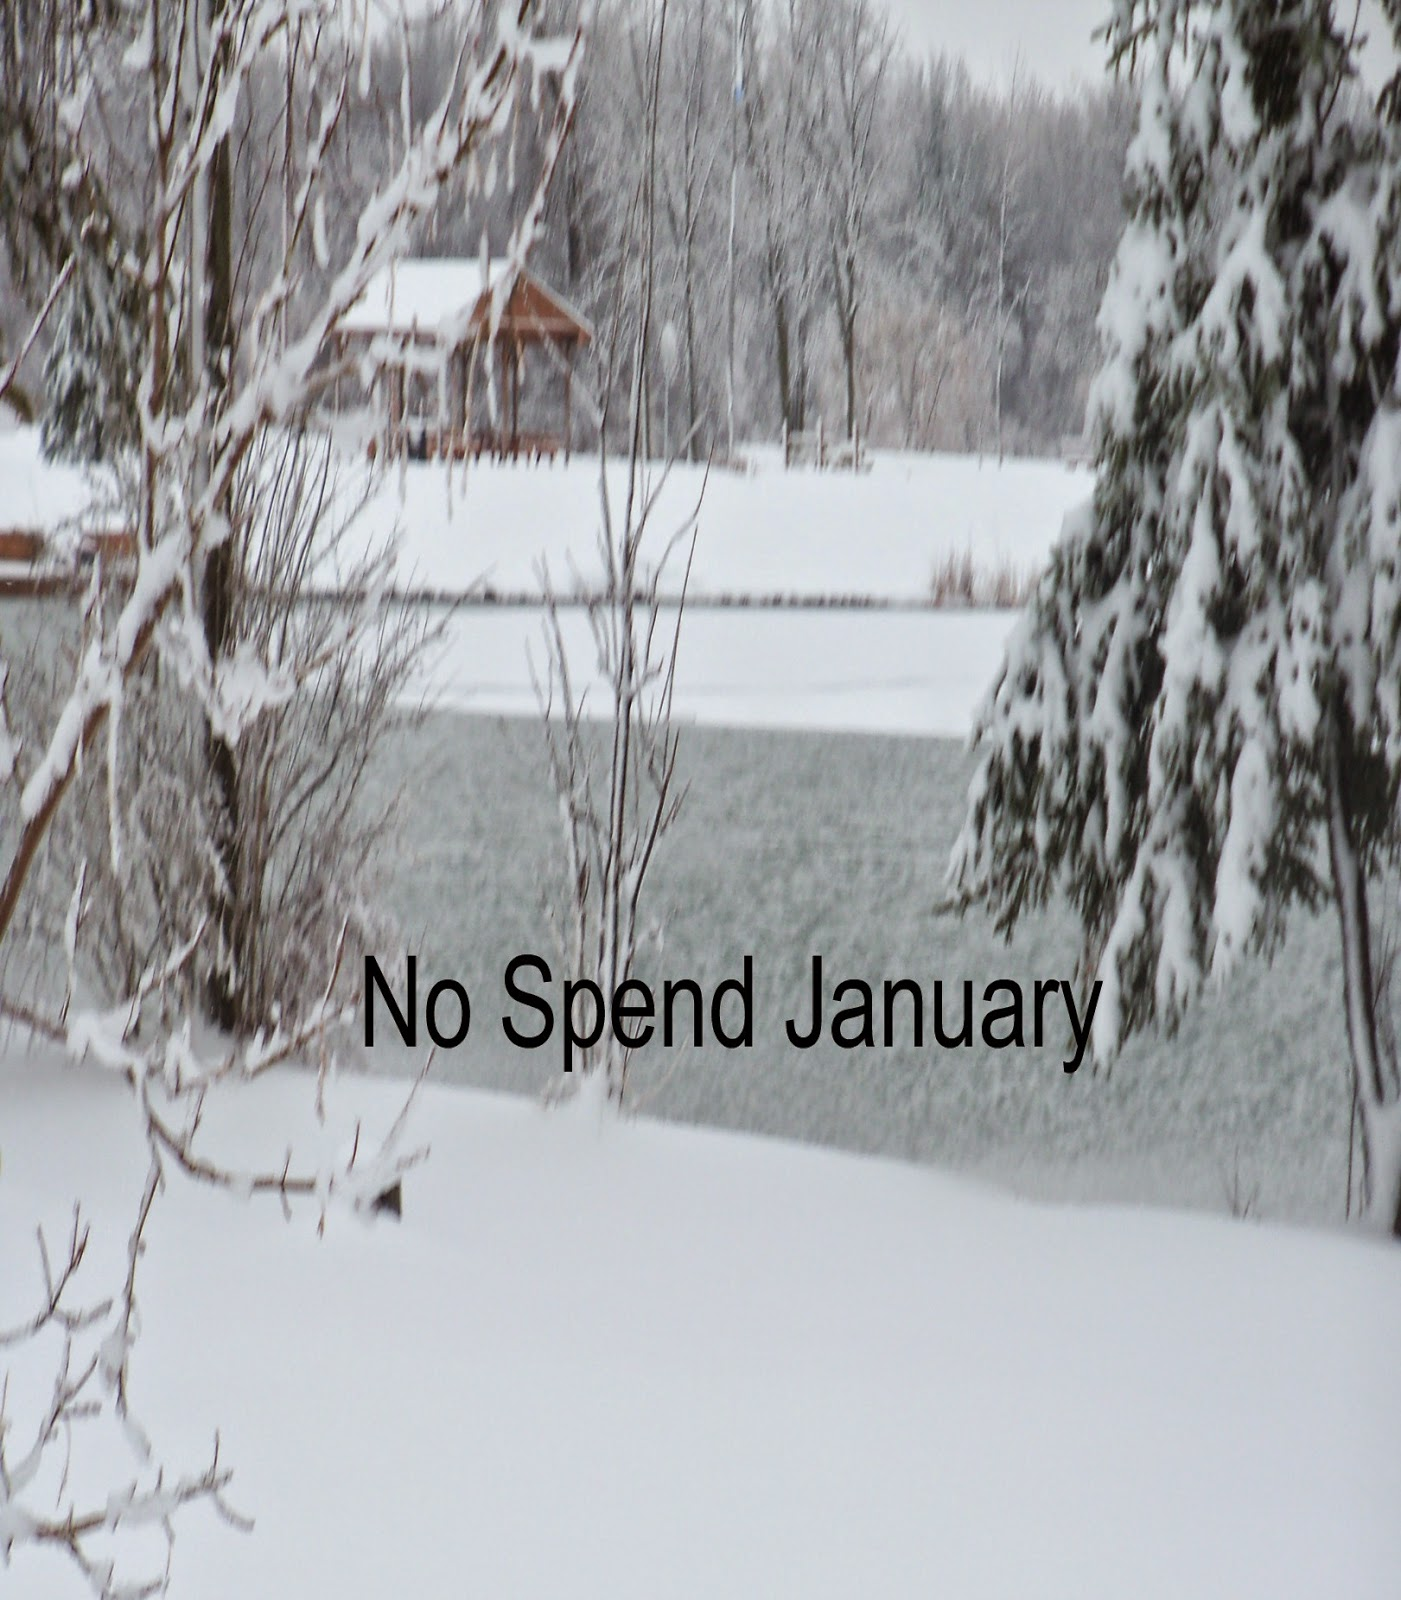 No Spend January